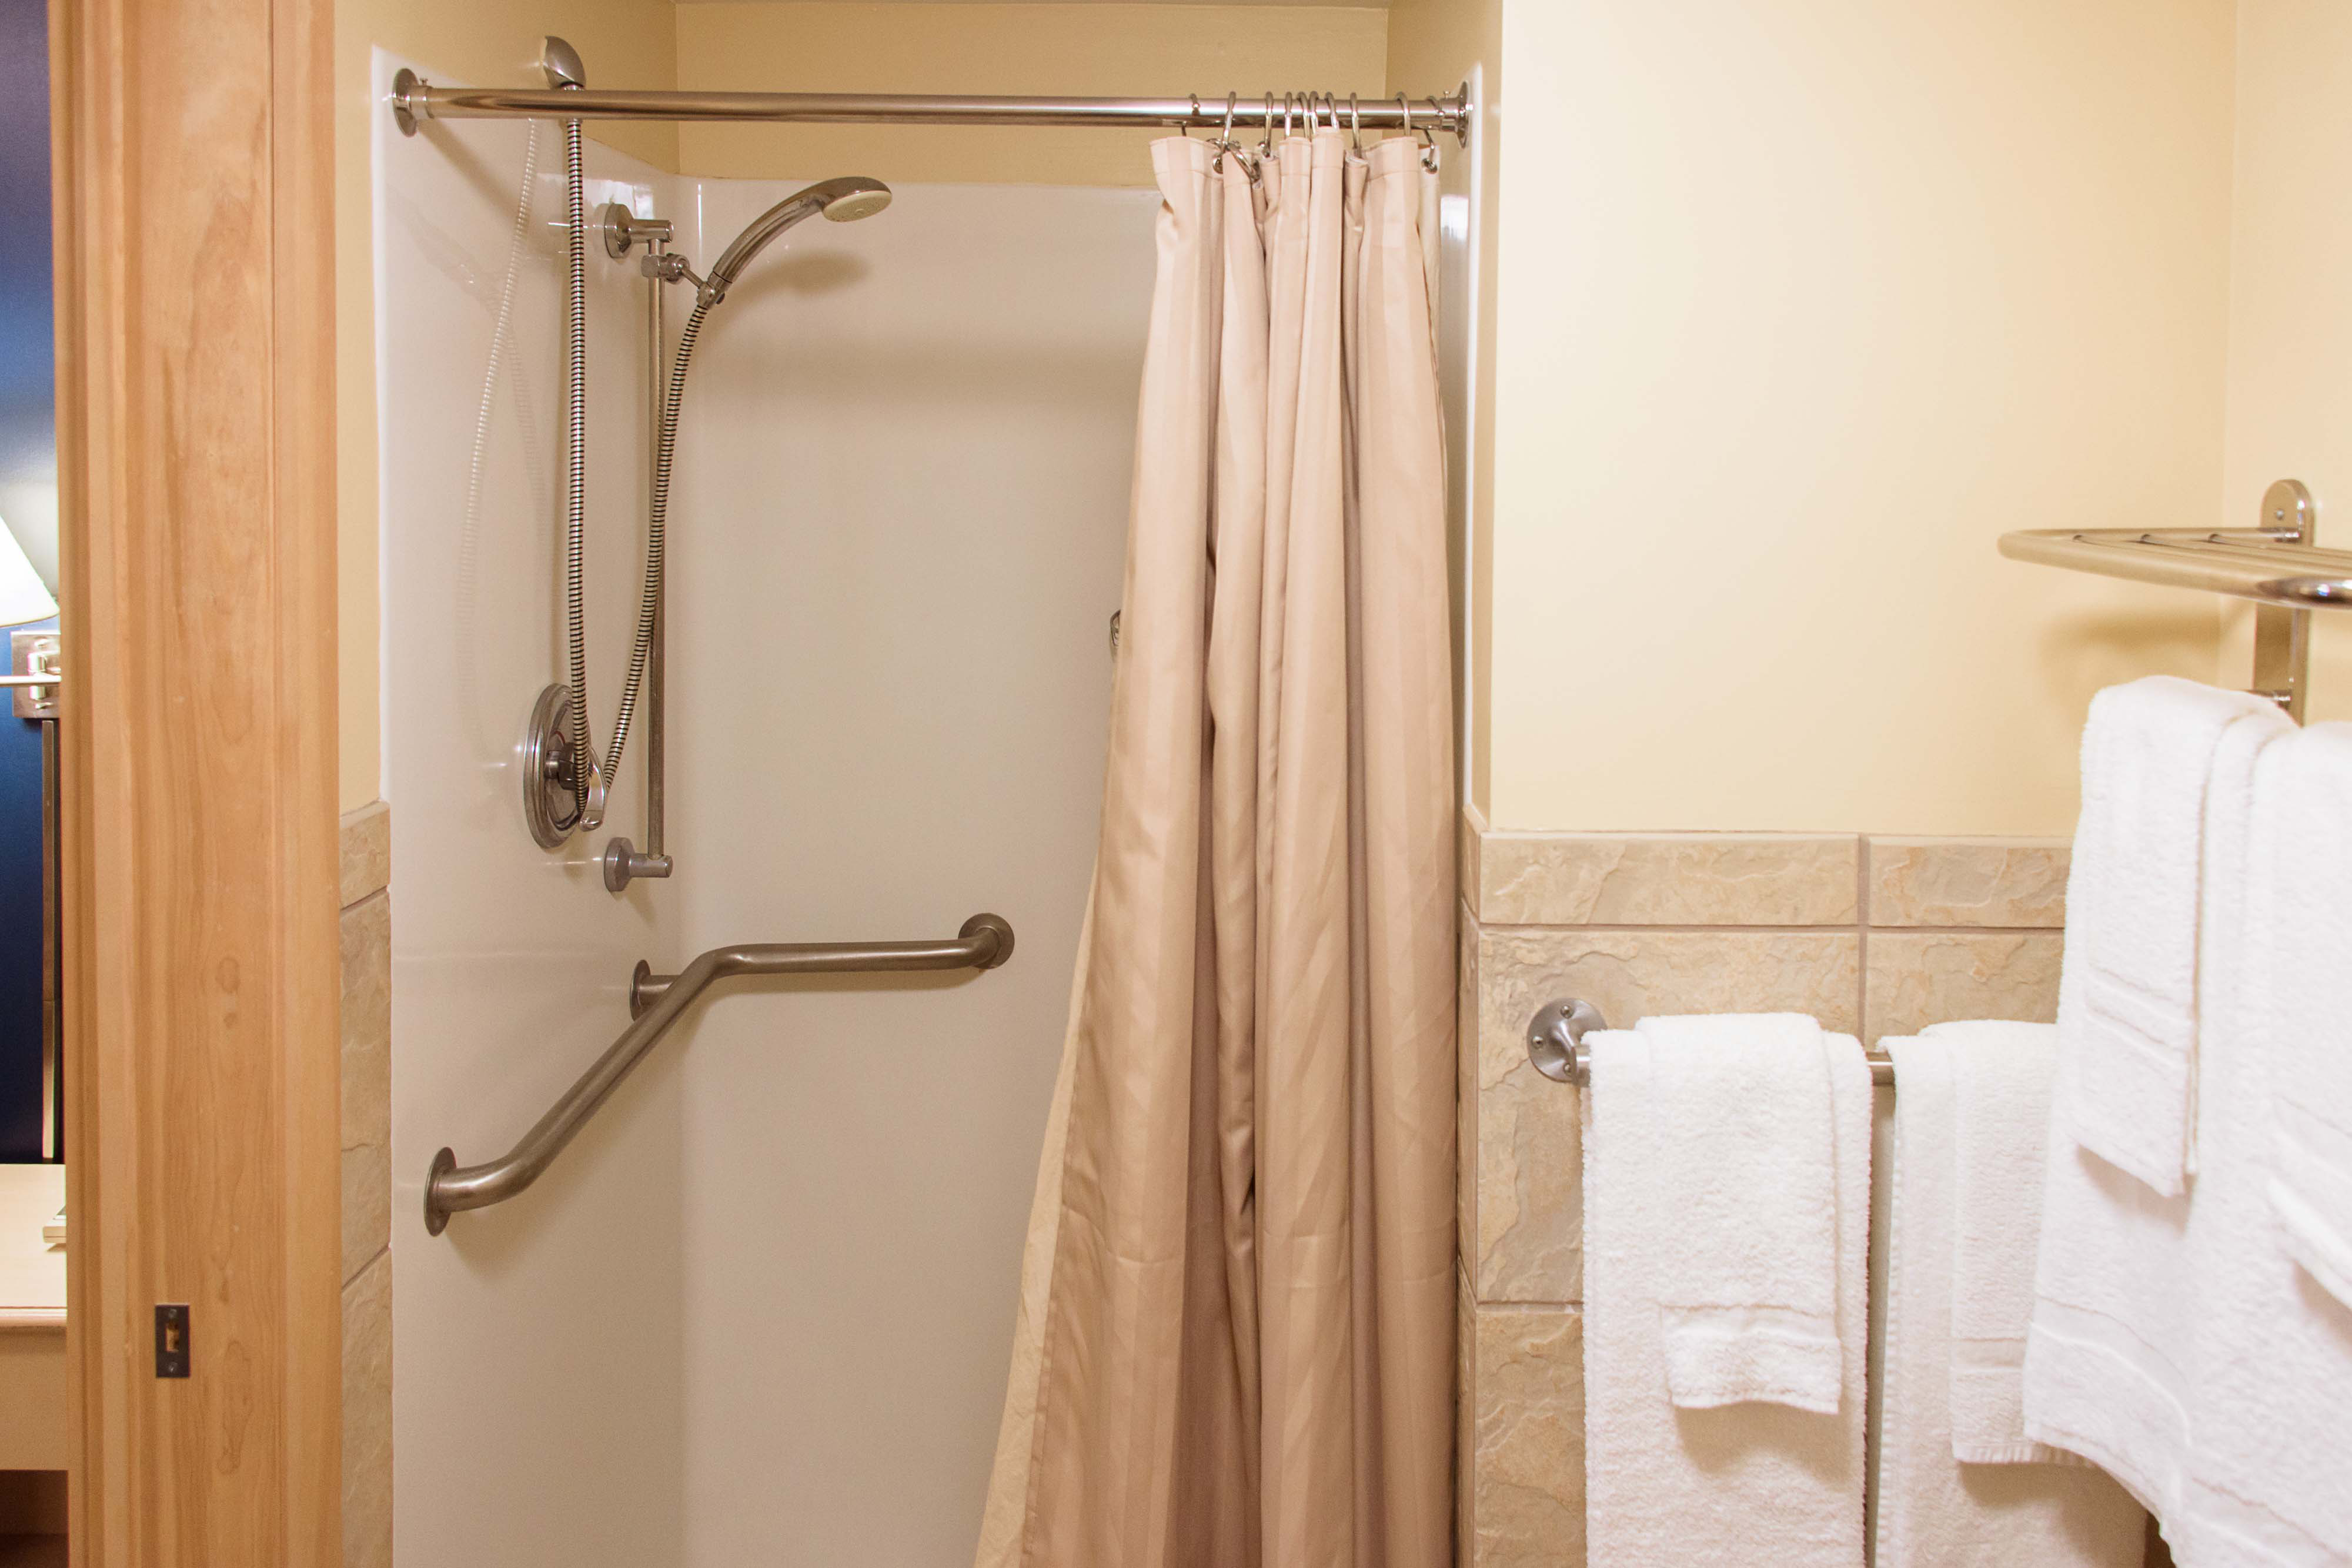 The shower and towel rack in the Ortner Center's 1-bedroom suite